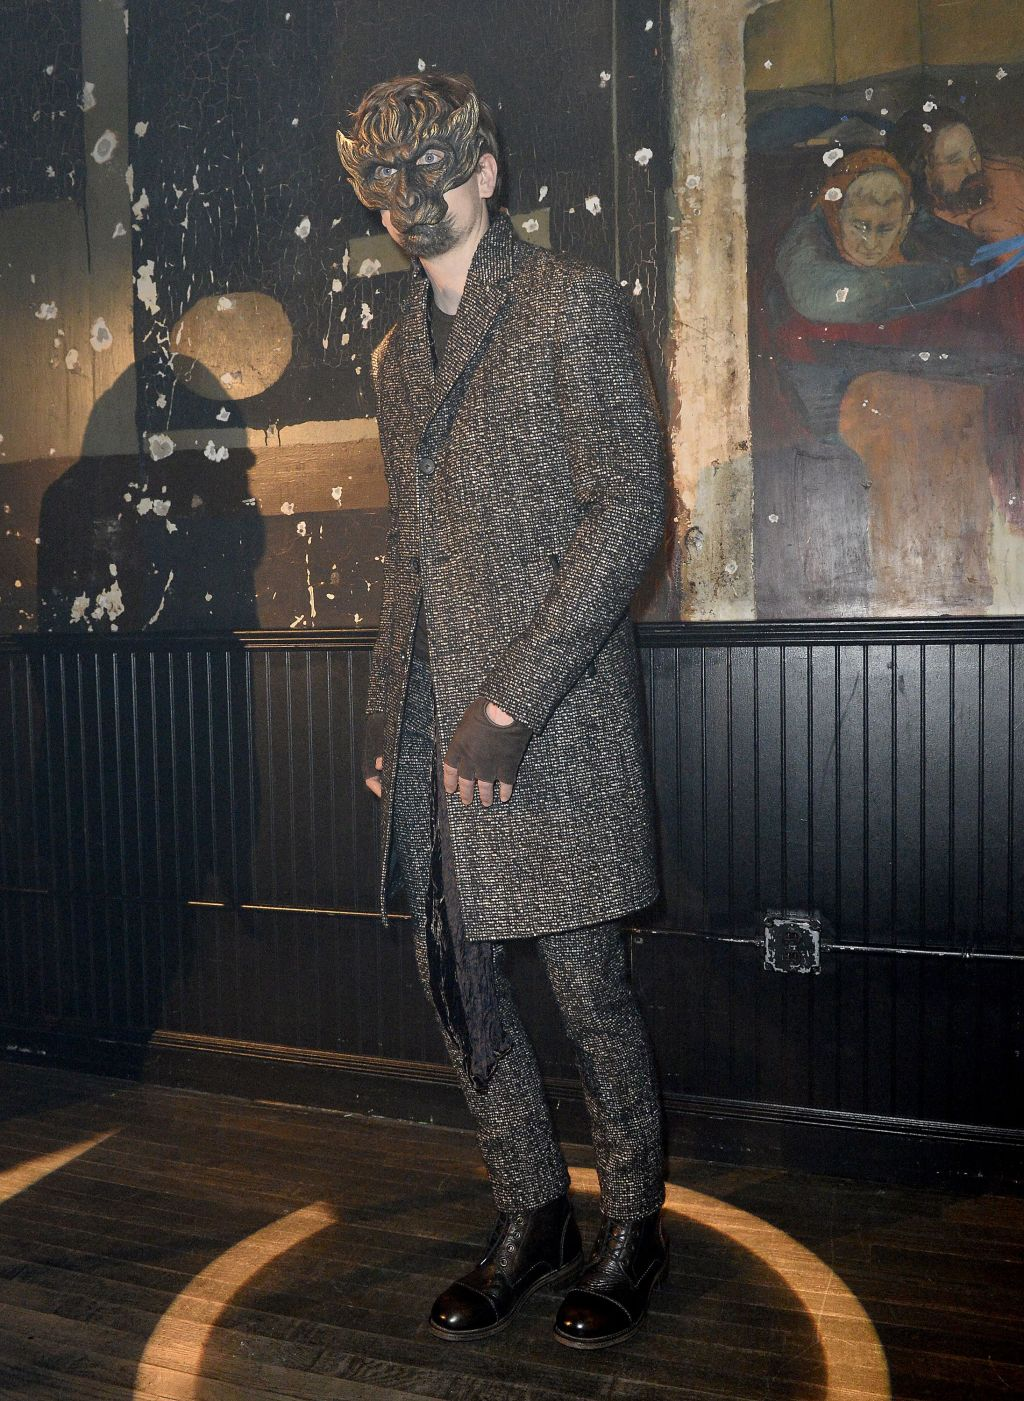 John Varvatos Men's RTW Fall 2016 Photo by Thomas Iannaccone/WWD